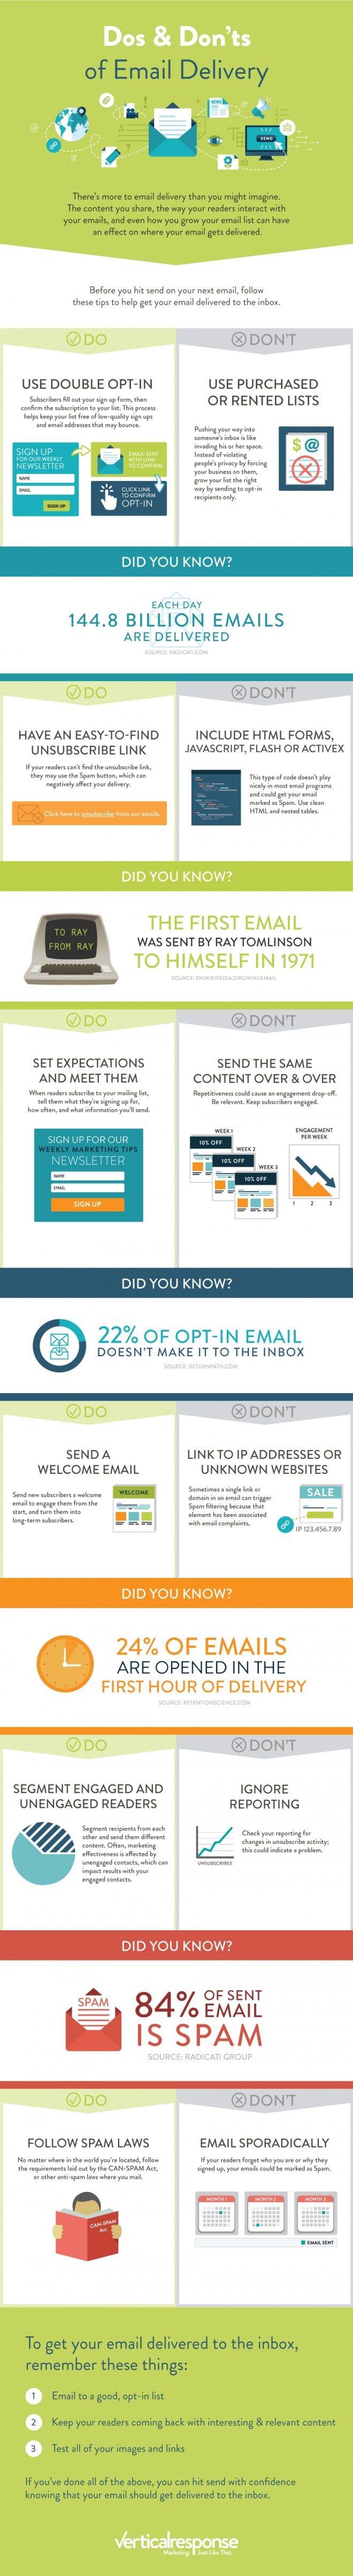 dos-and-donts-of-email-delivery-660x4815